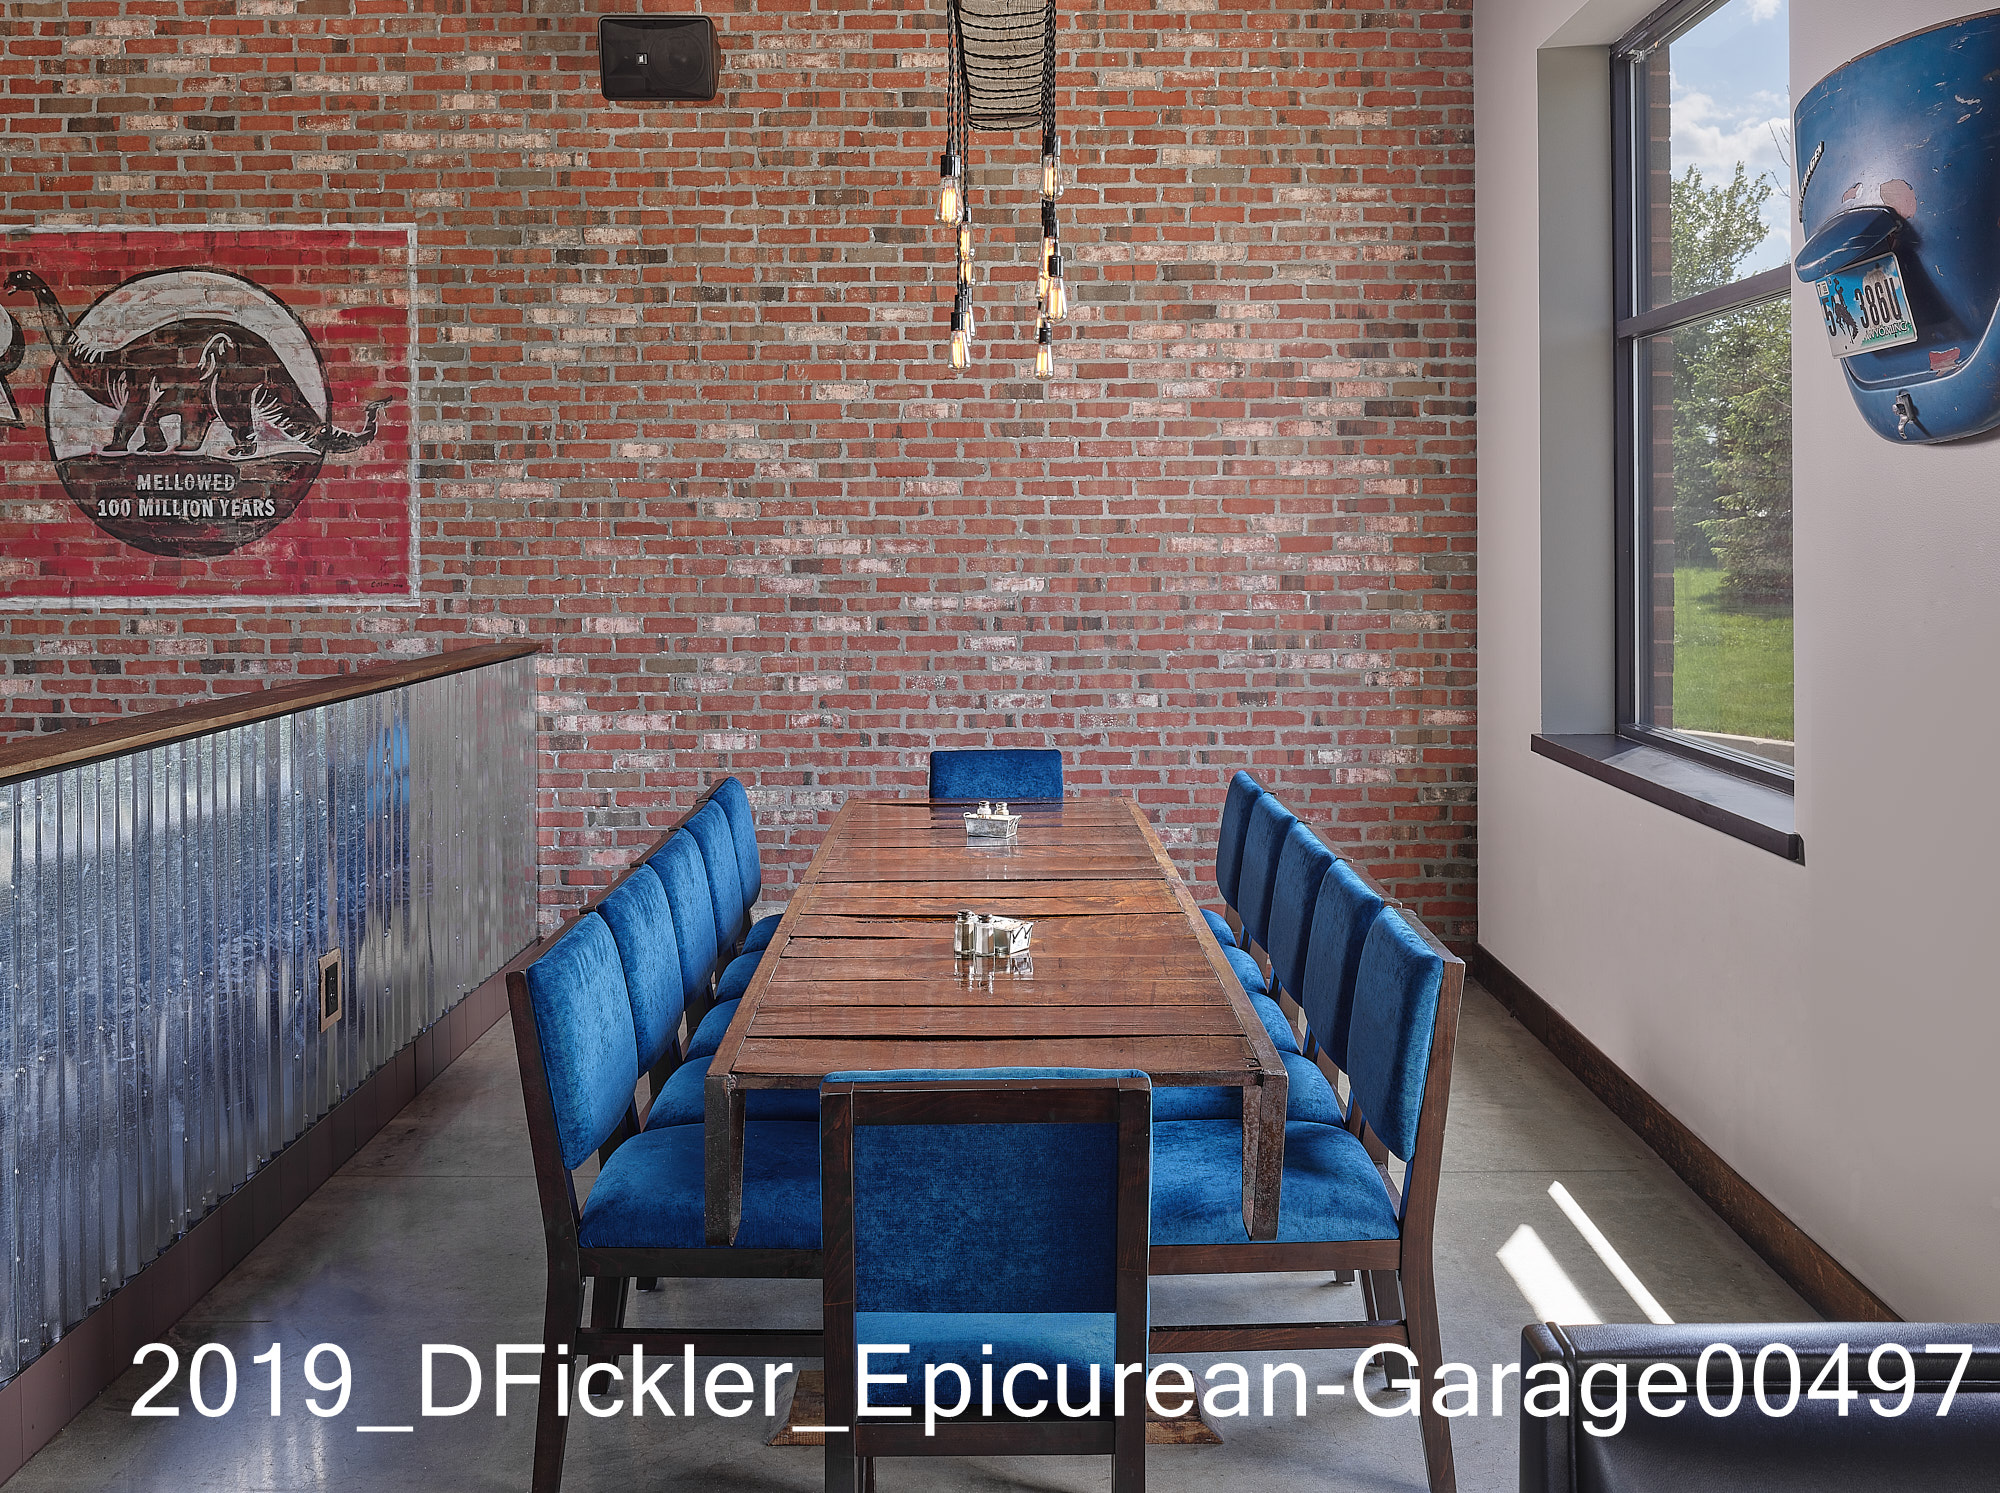 2019_DFickler_Epicurean-Garage00497.jpg